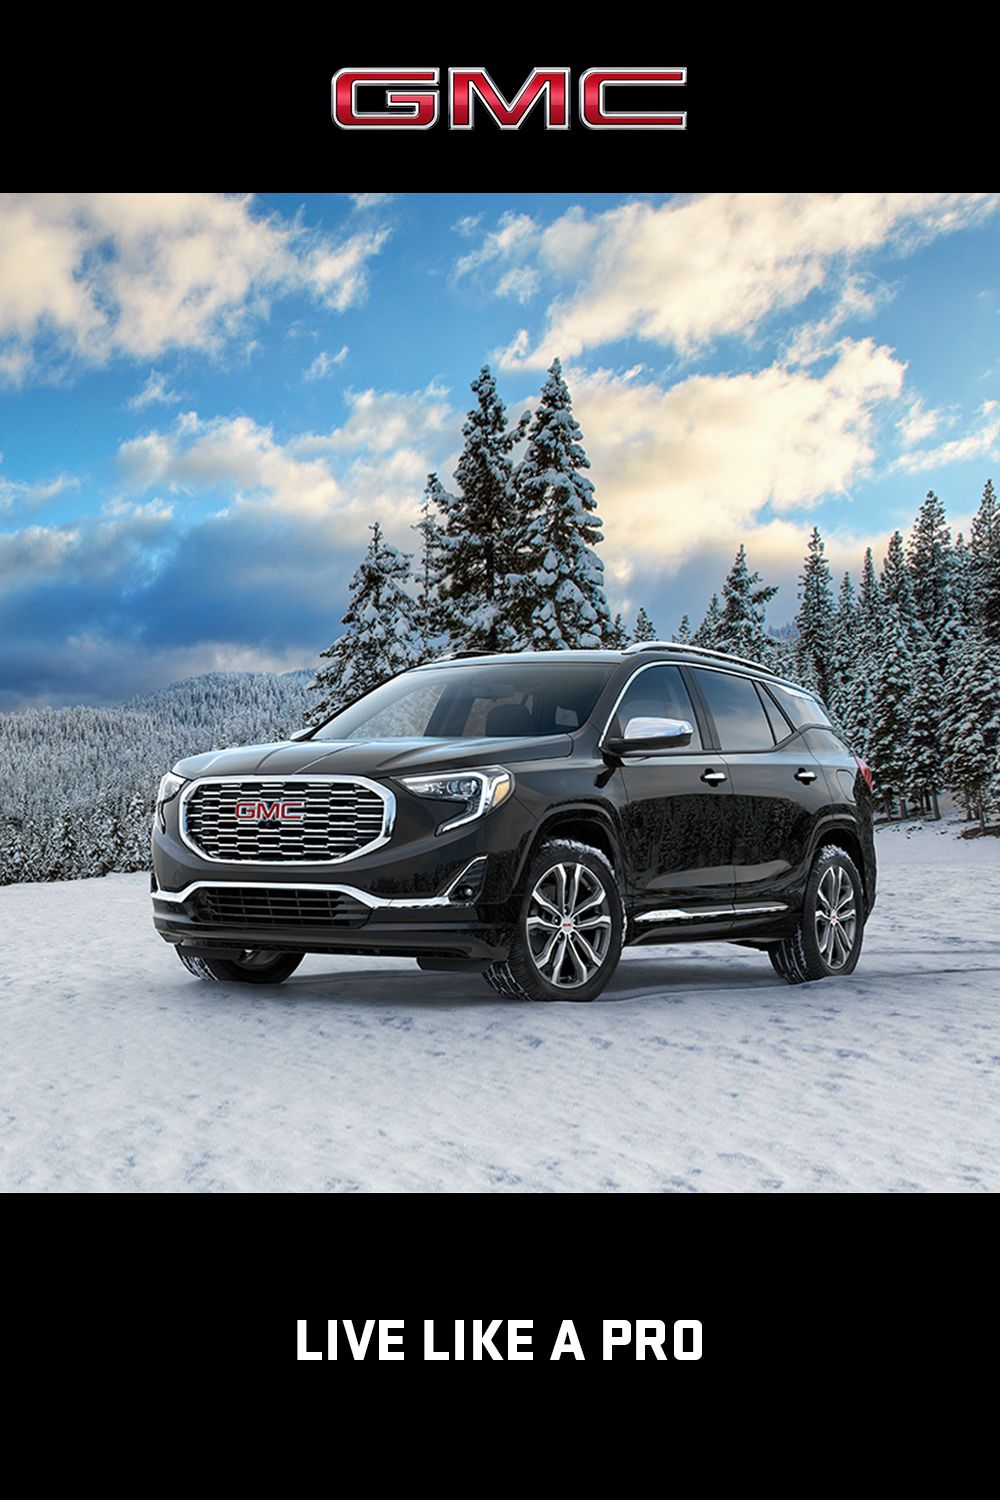 The 2018 Gmc Terrain Offers Three All New Available Turbocharged Engines Including A New Turbo Diesel Engine Gmc Terrain Buick Gmc Gmc